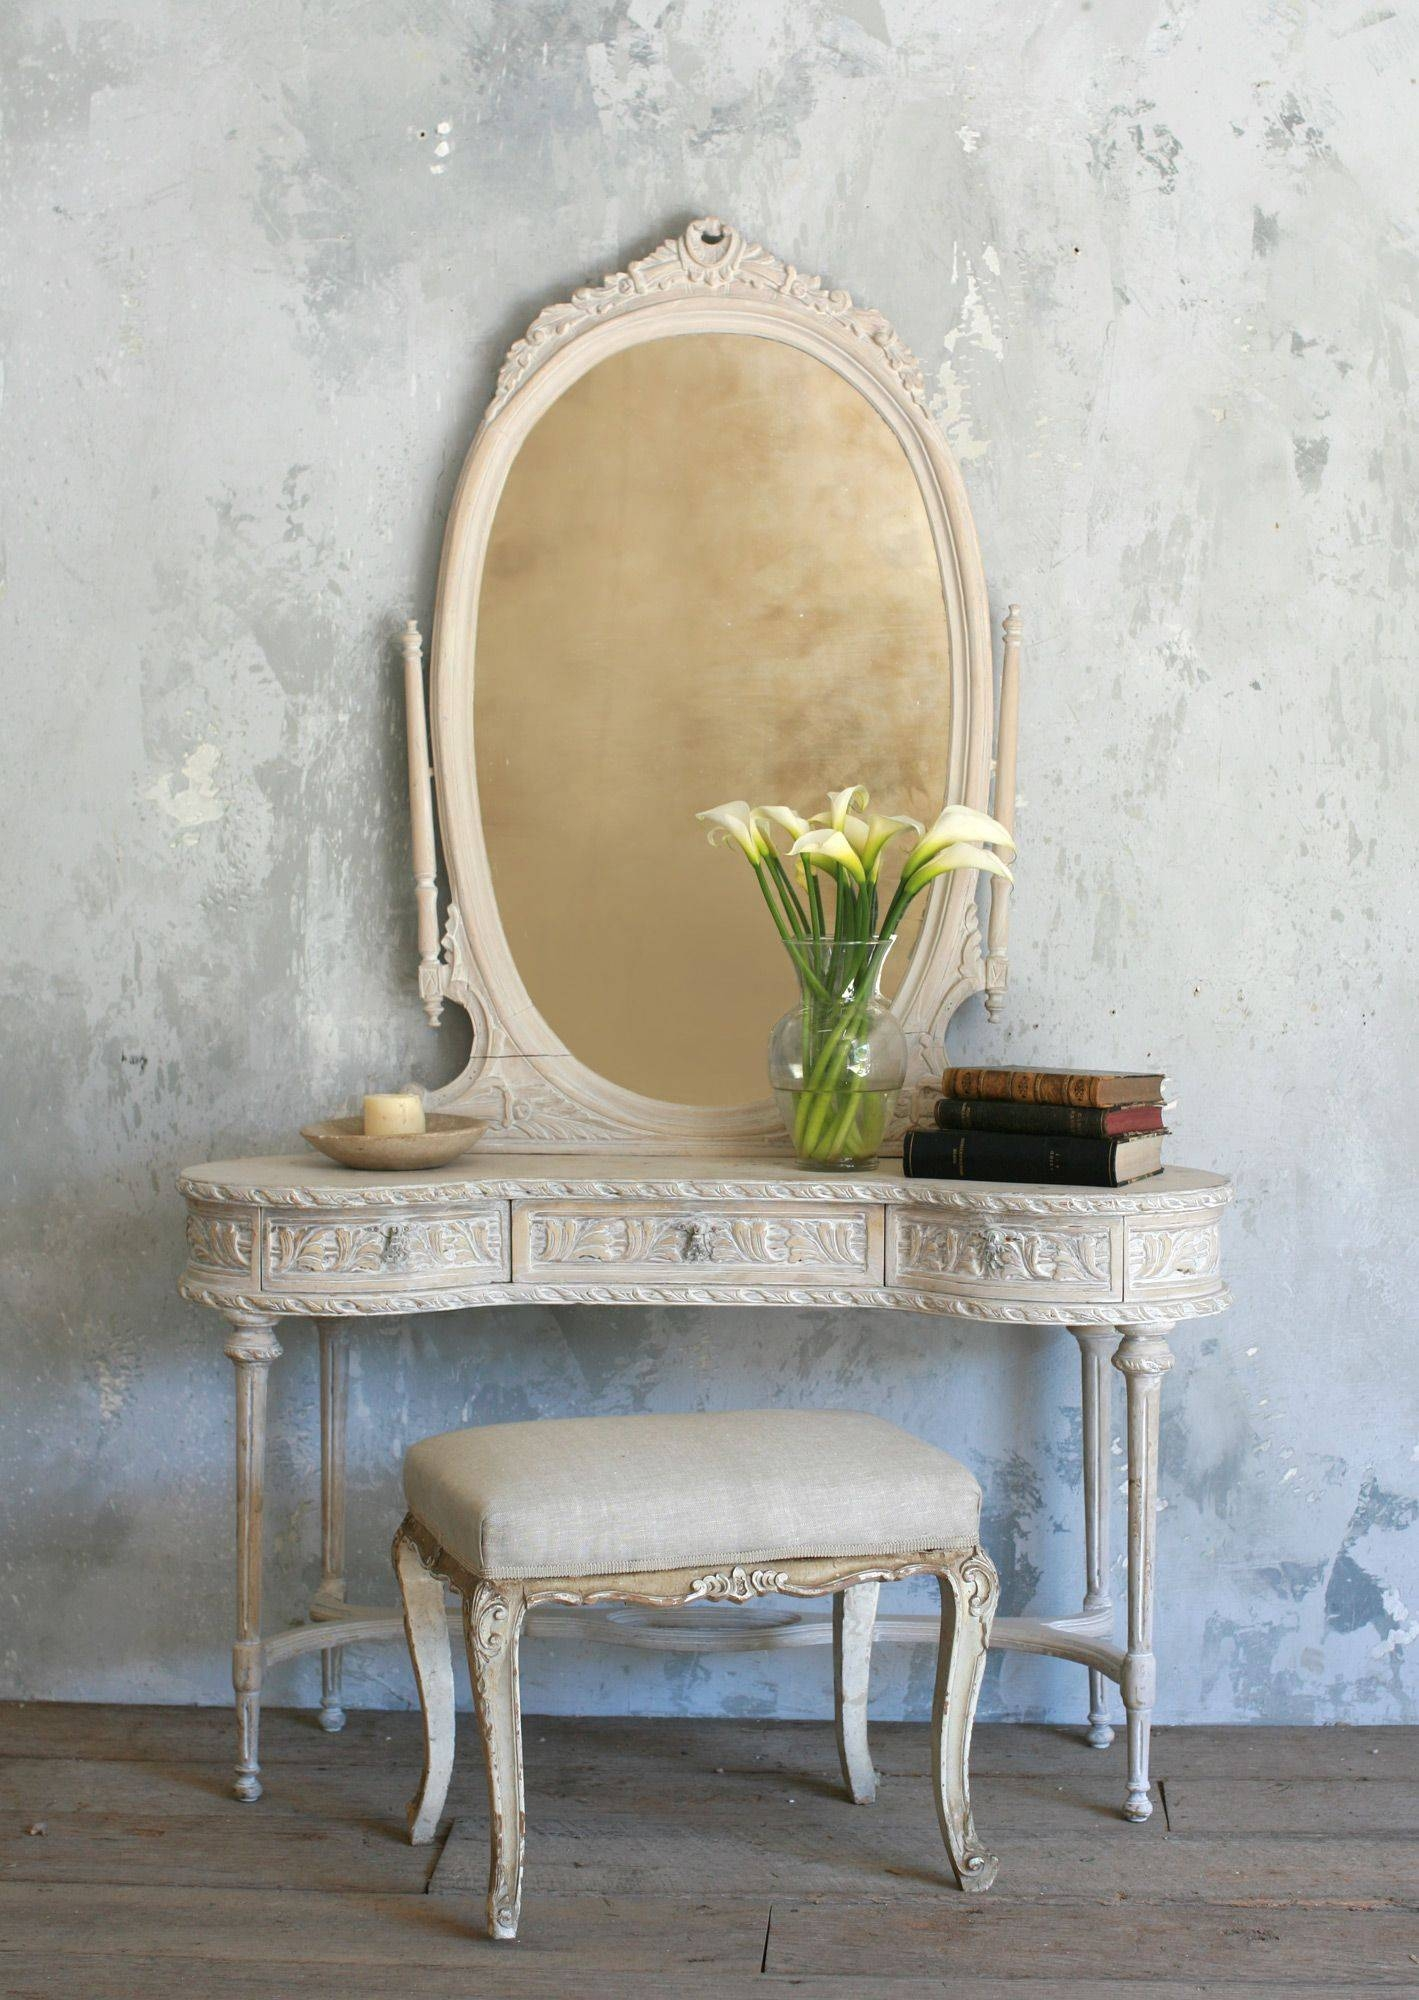 Antique Vanity With Mirror Bath : Doherty House - Antique Vanity regarding Antique Bathroom Mirrors (Image 3 of 15)